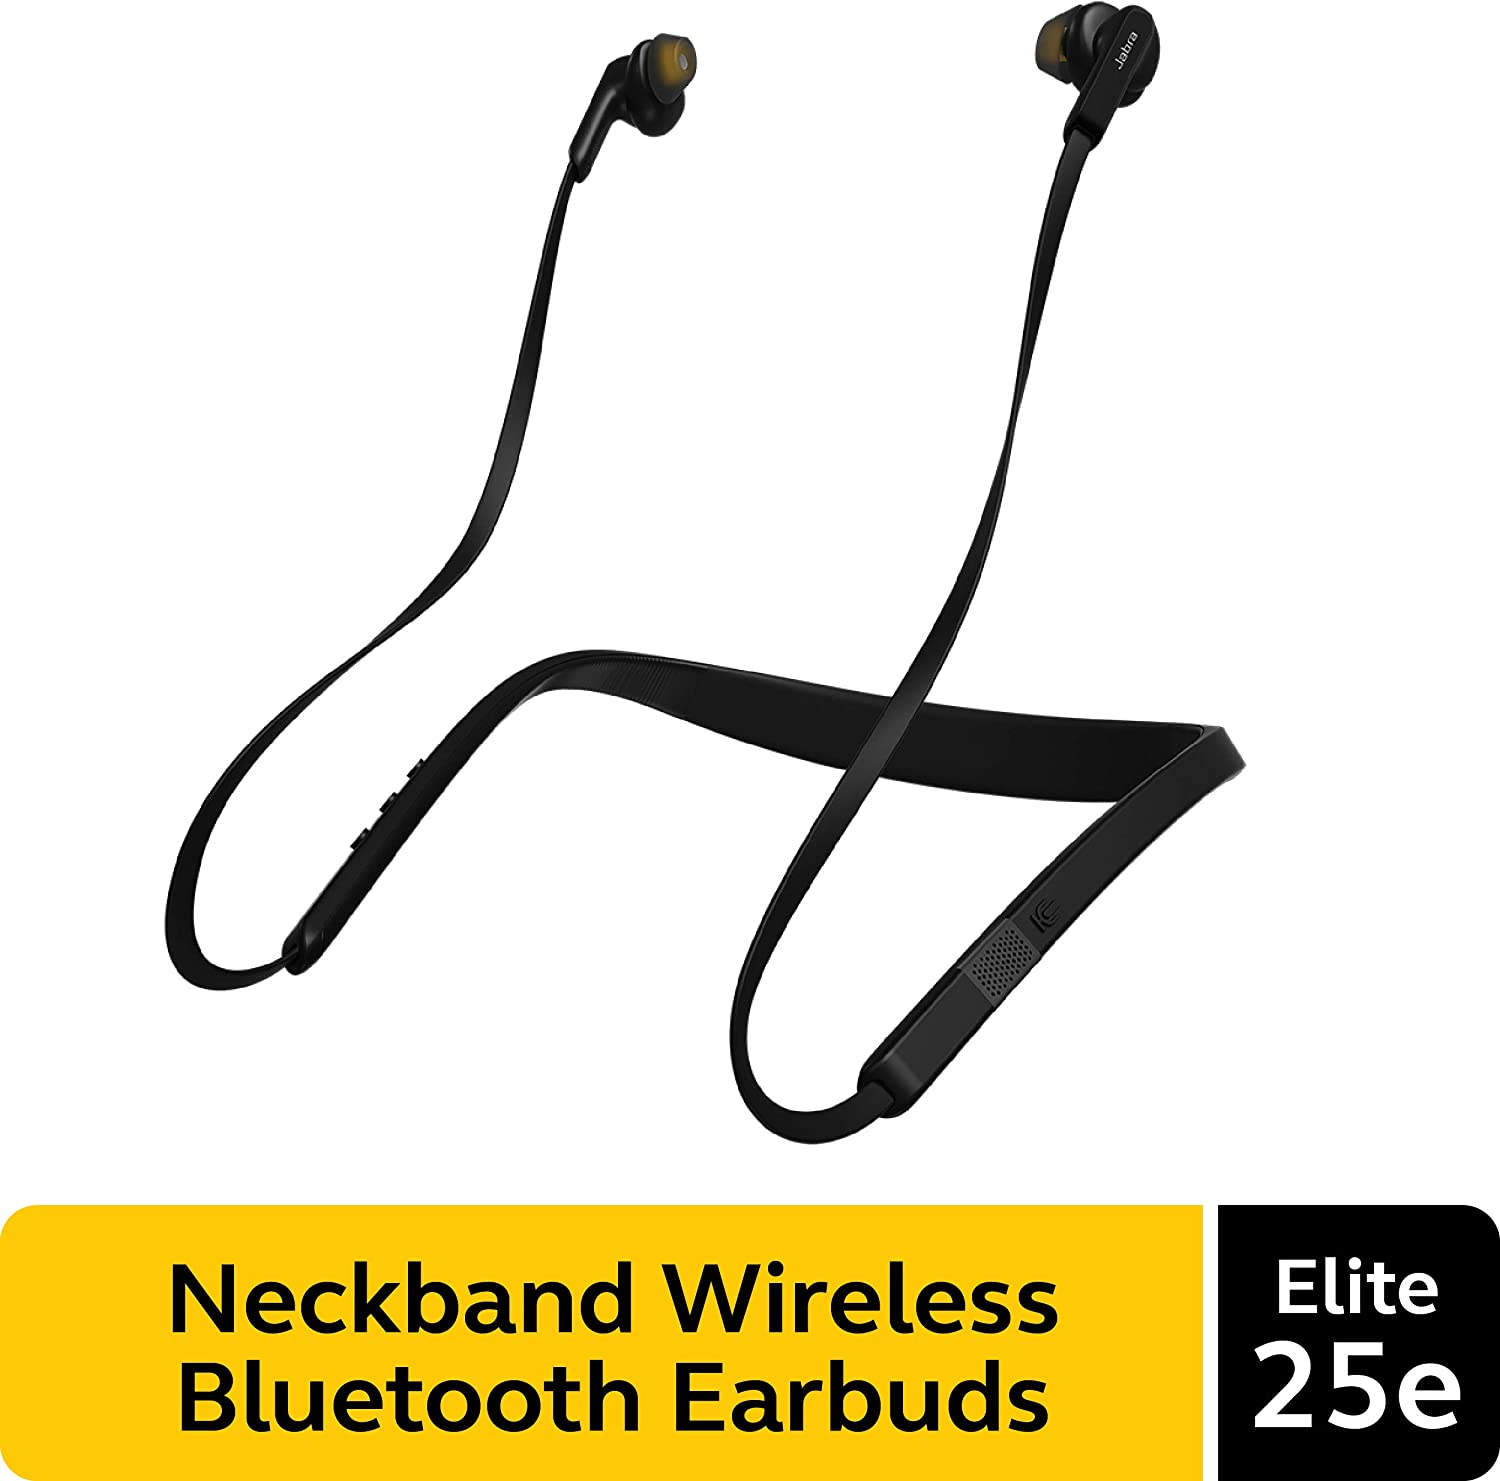 Jabra Elite 25e Wireless Earbuds, Black – Voice Assistant and Bluetooth Enabled, Around-the-Neck Style with a Secure Fit and Superior Sound for Music and Calls, Long Battery Life, Android & iOS